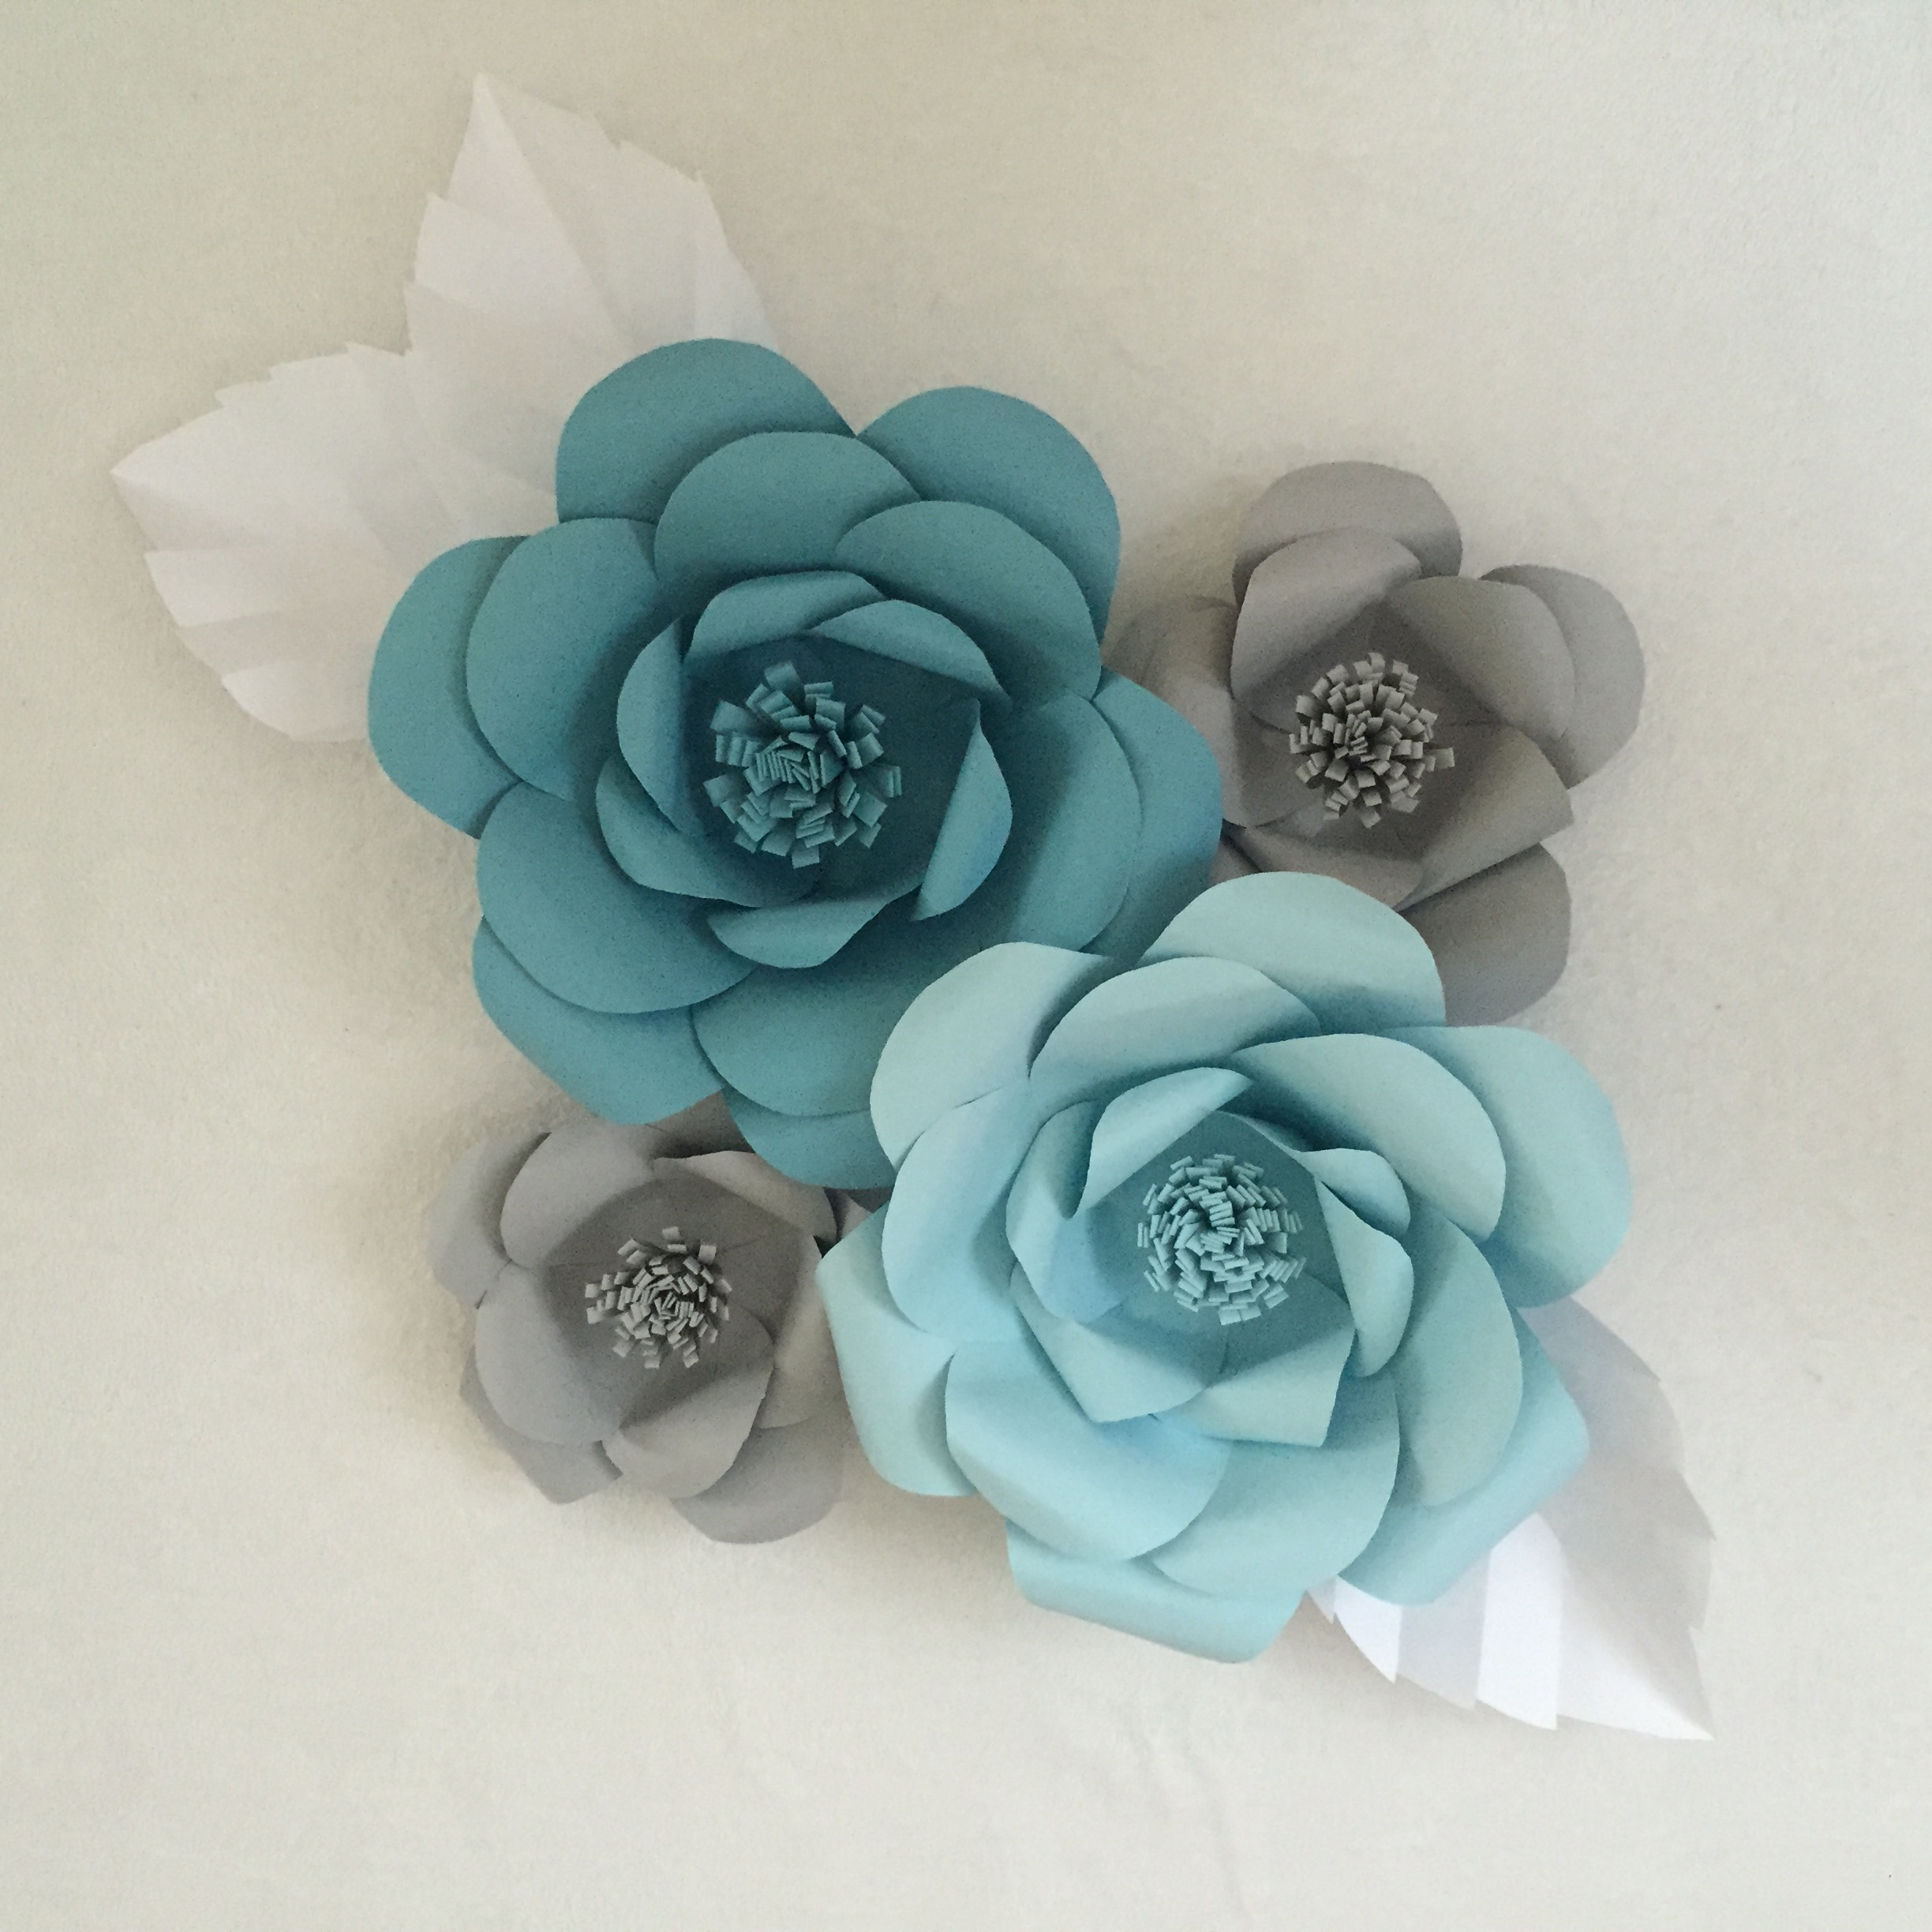 Large paper flower wall selol ink paper flower backdrop ash and crafts mightylinksfo